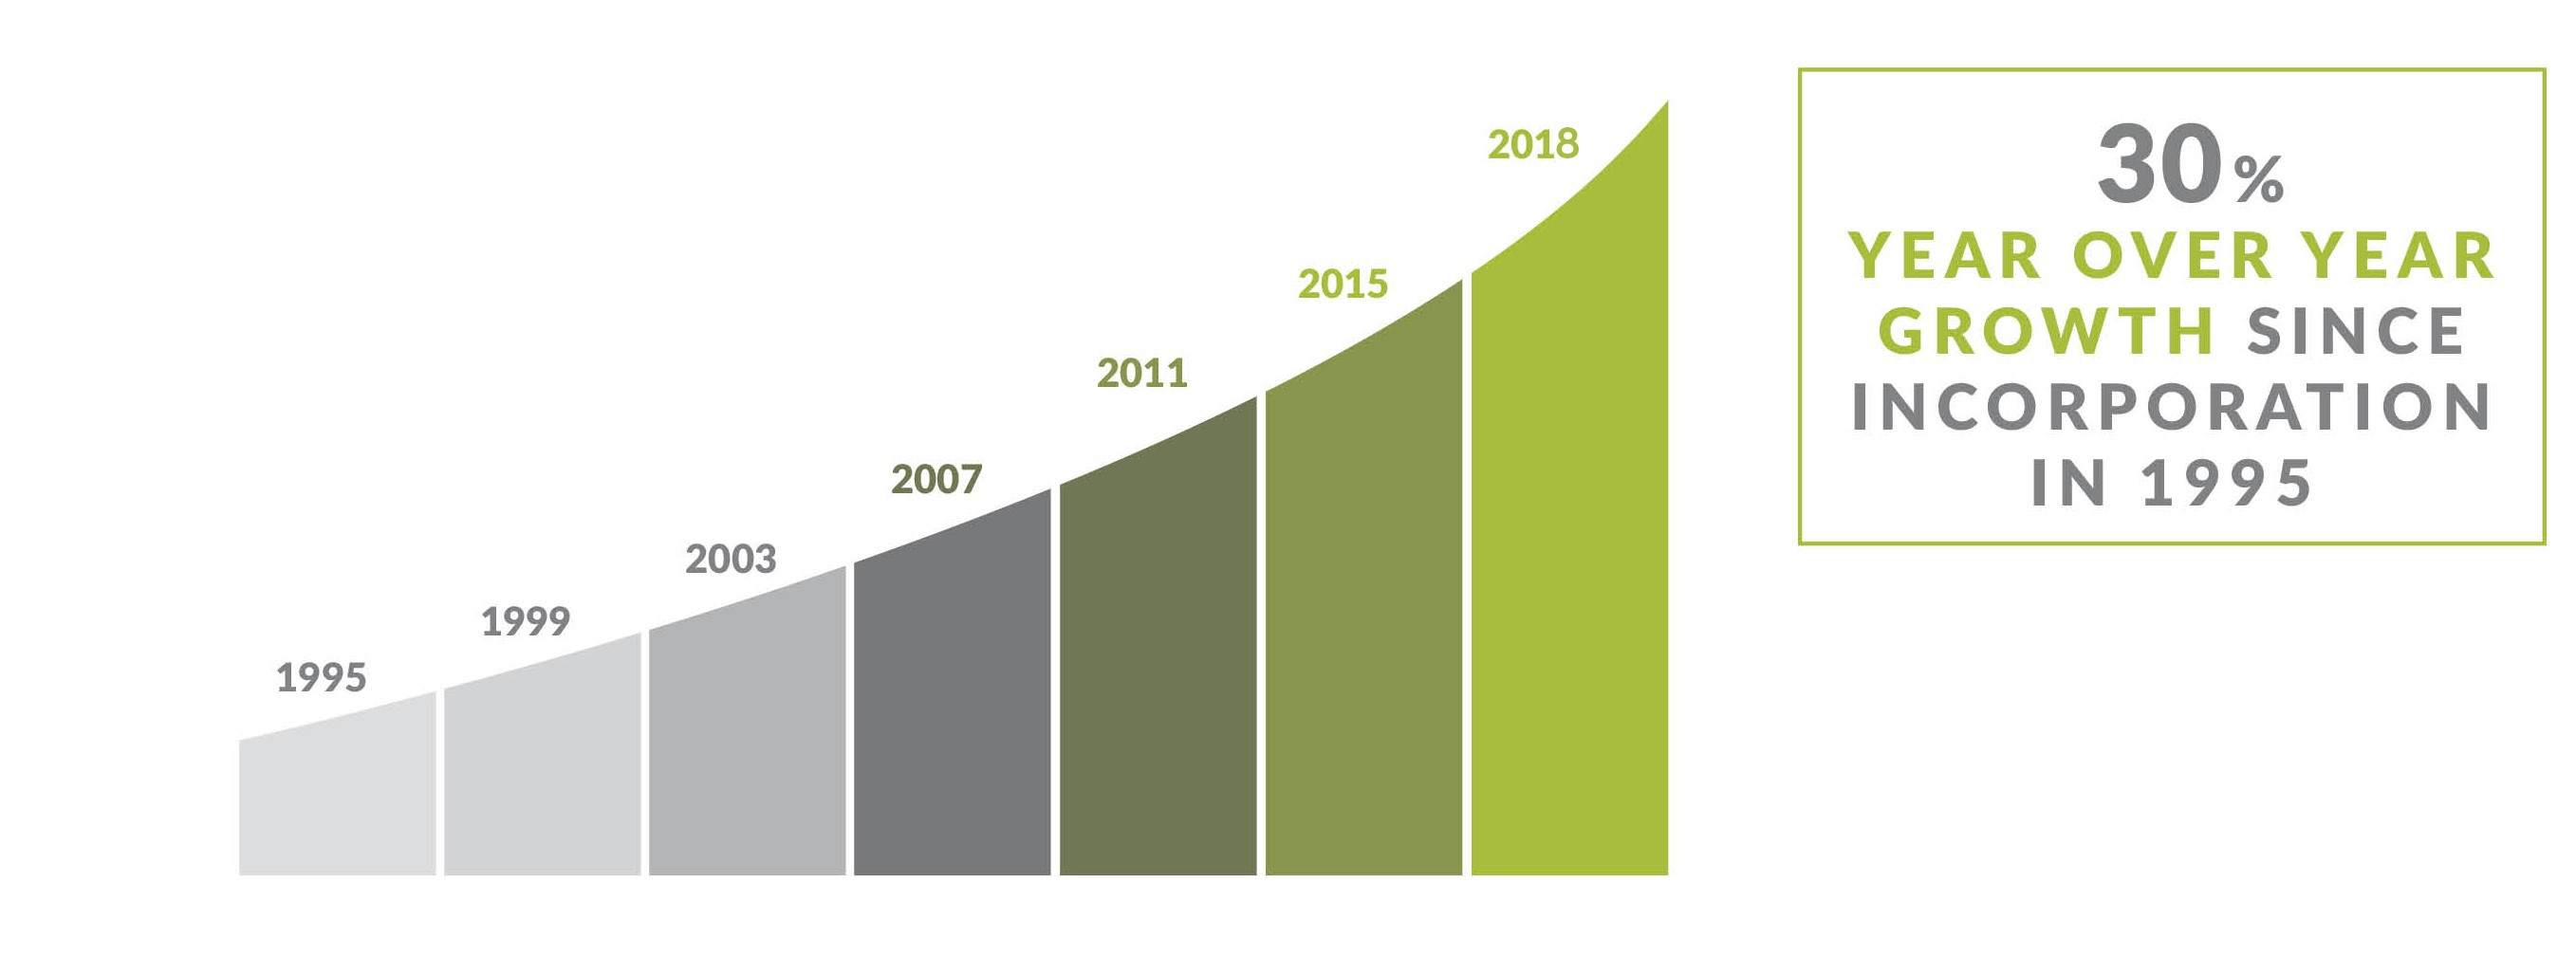 VERTEX, 30% Year Over Year Growth Since 1995